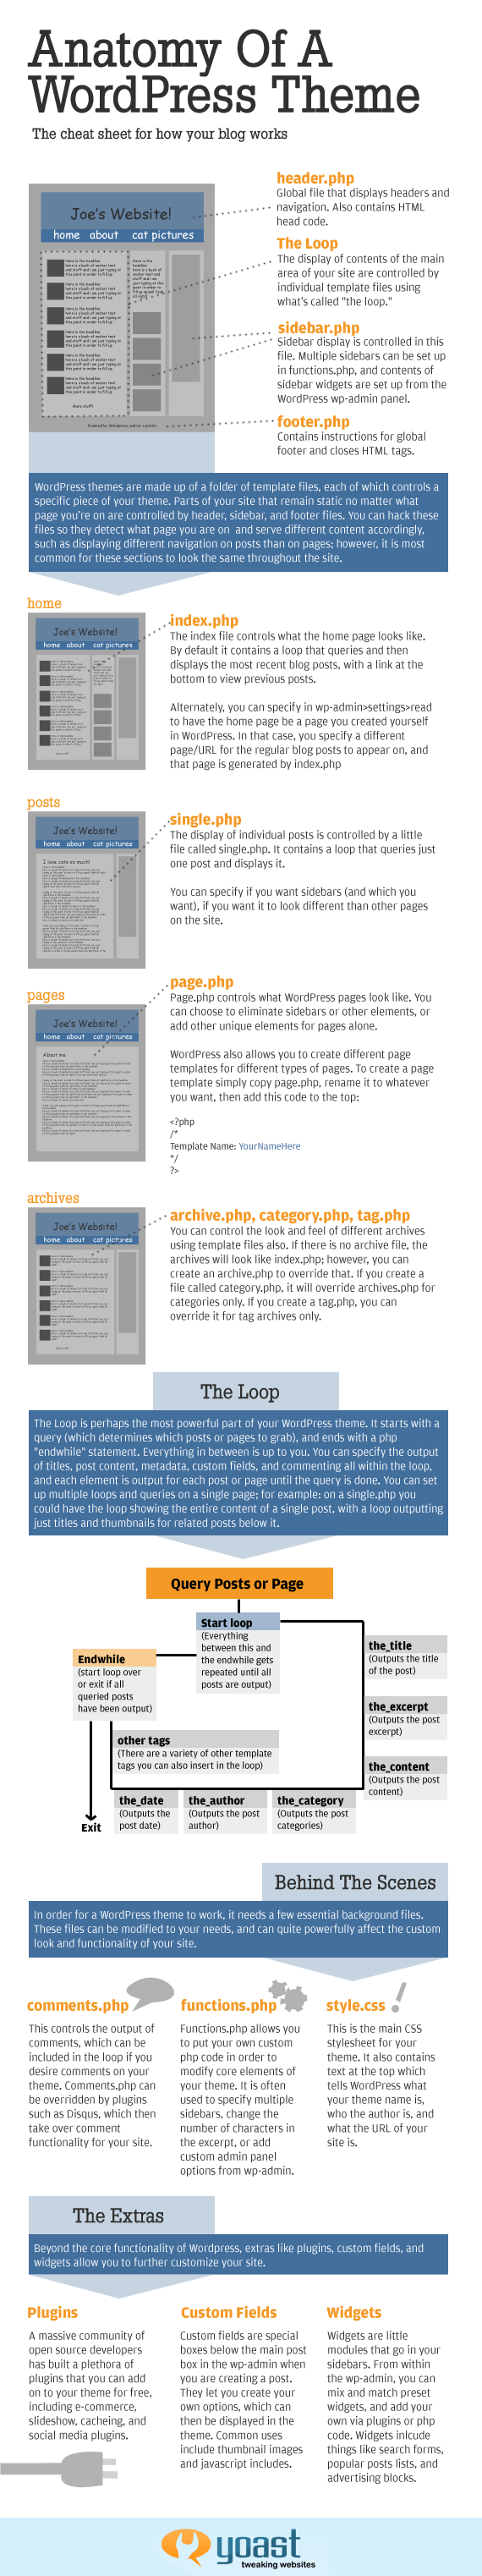 Anatomy of a WordPress theme - Infographic